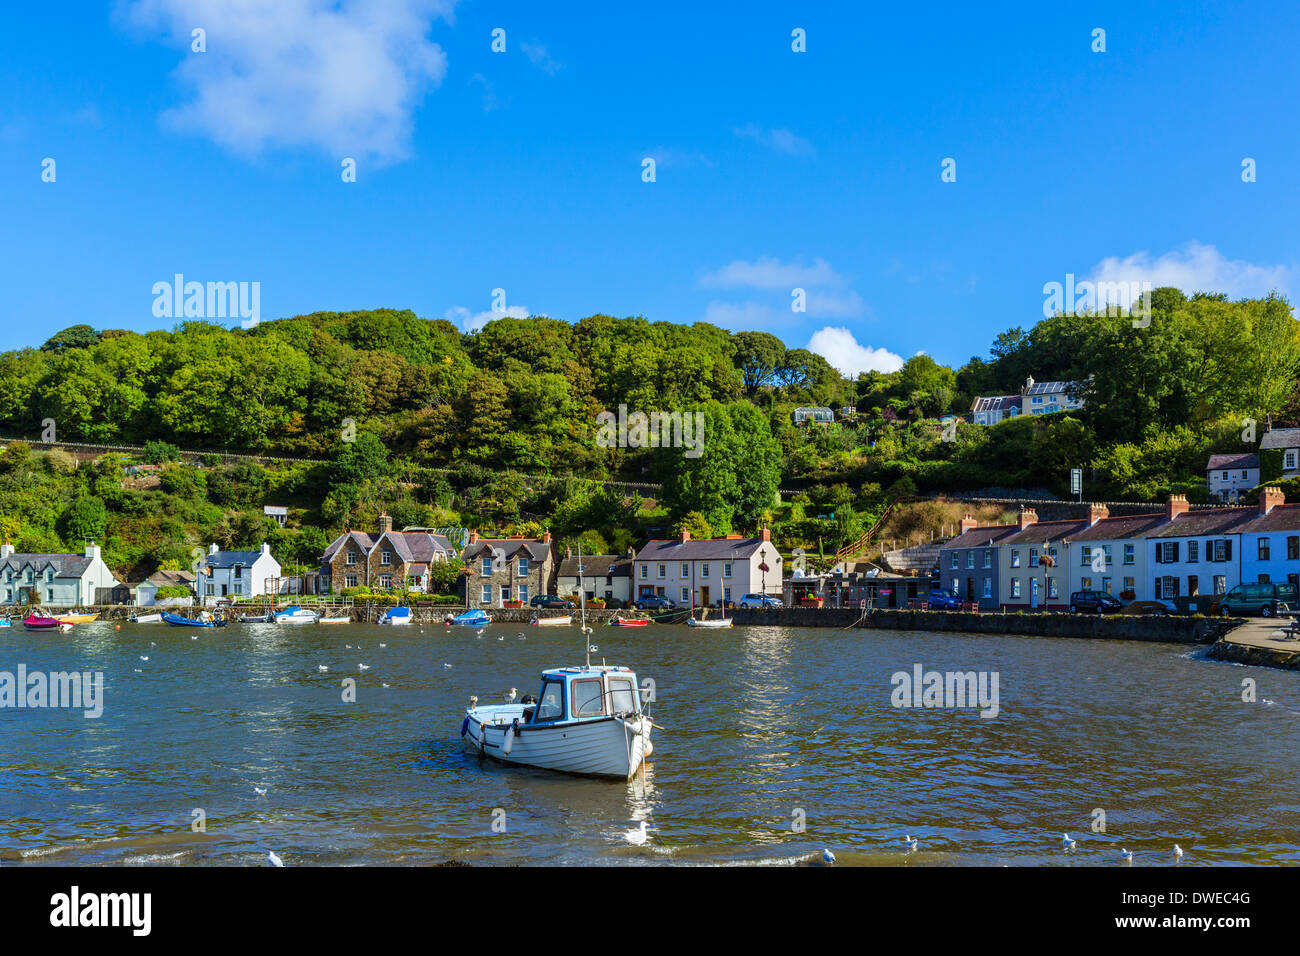 Boats in the harbour in the seaside village of Lower Fishguard, Pembrokeshire, Wales, UK - Stock Image